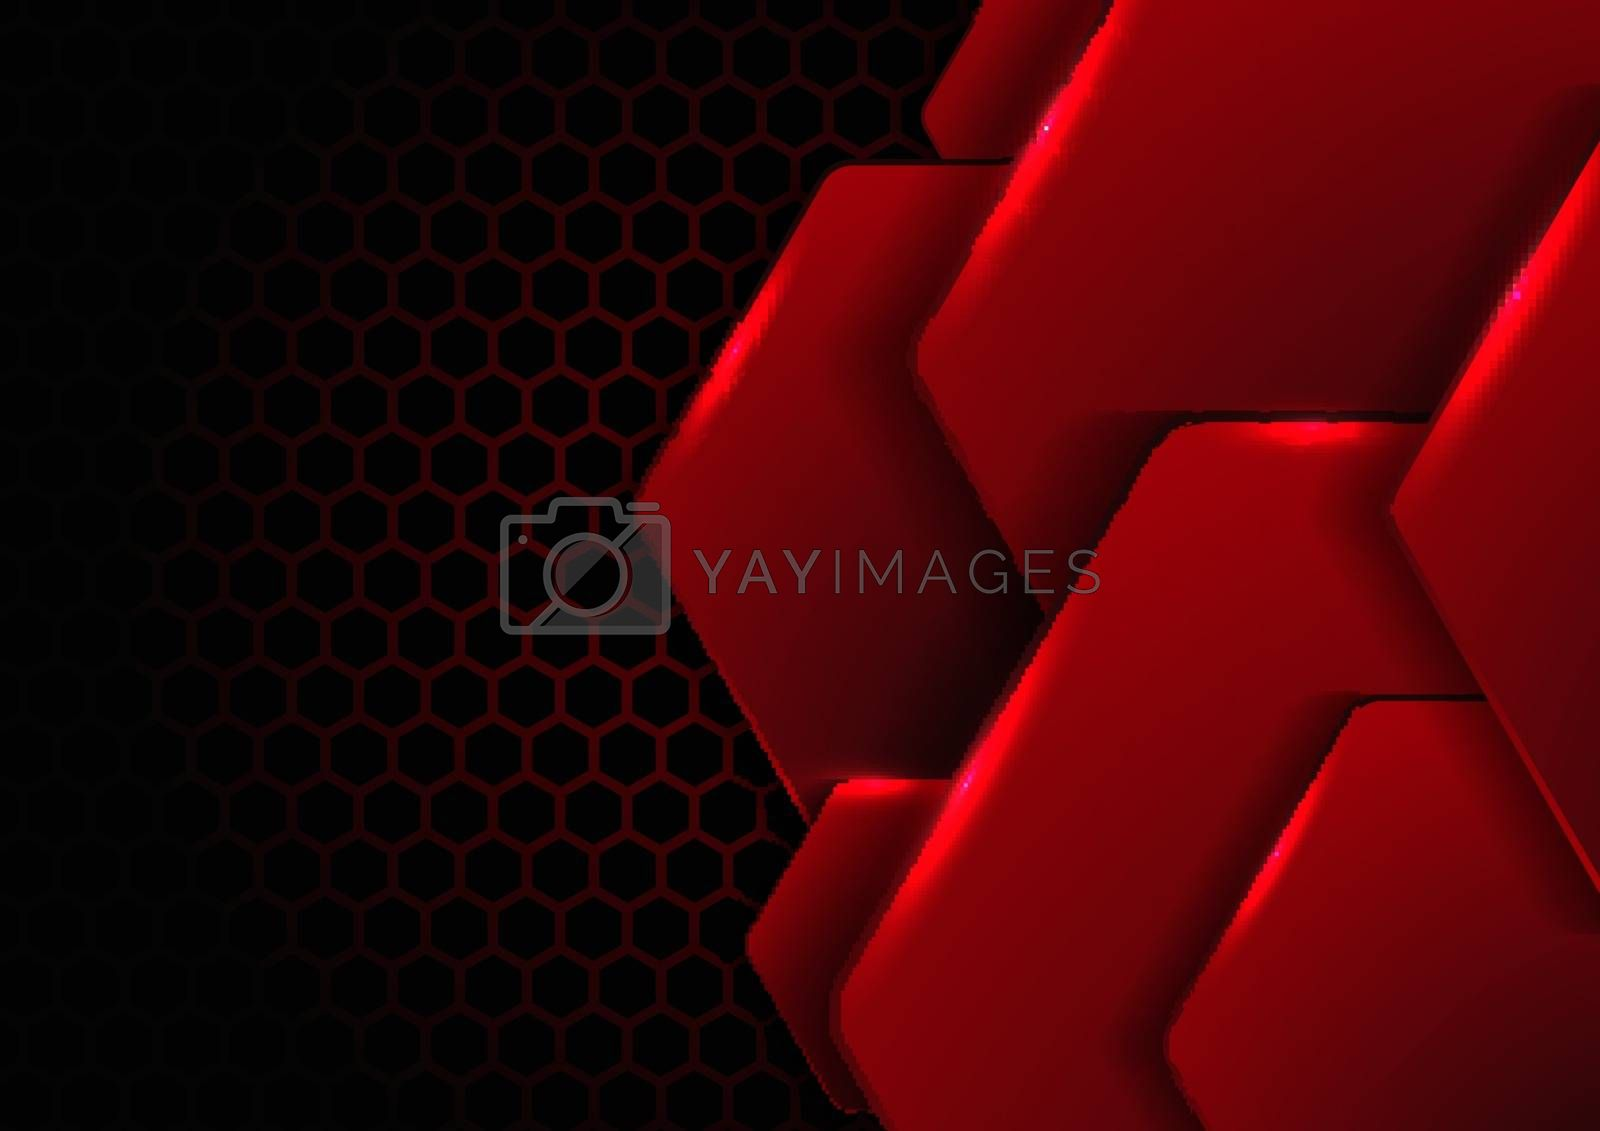 Abstract black and red metallic hexagon with lighting on hexagons texture pattern technology innovation concept background. Vector illustration